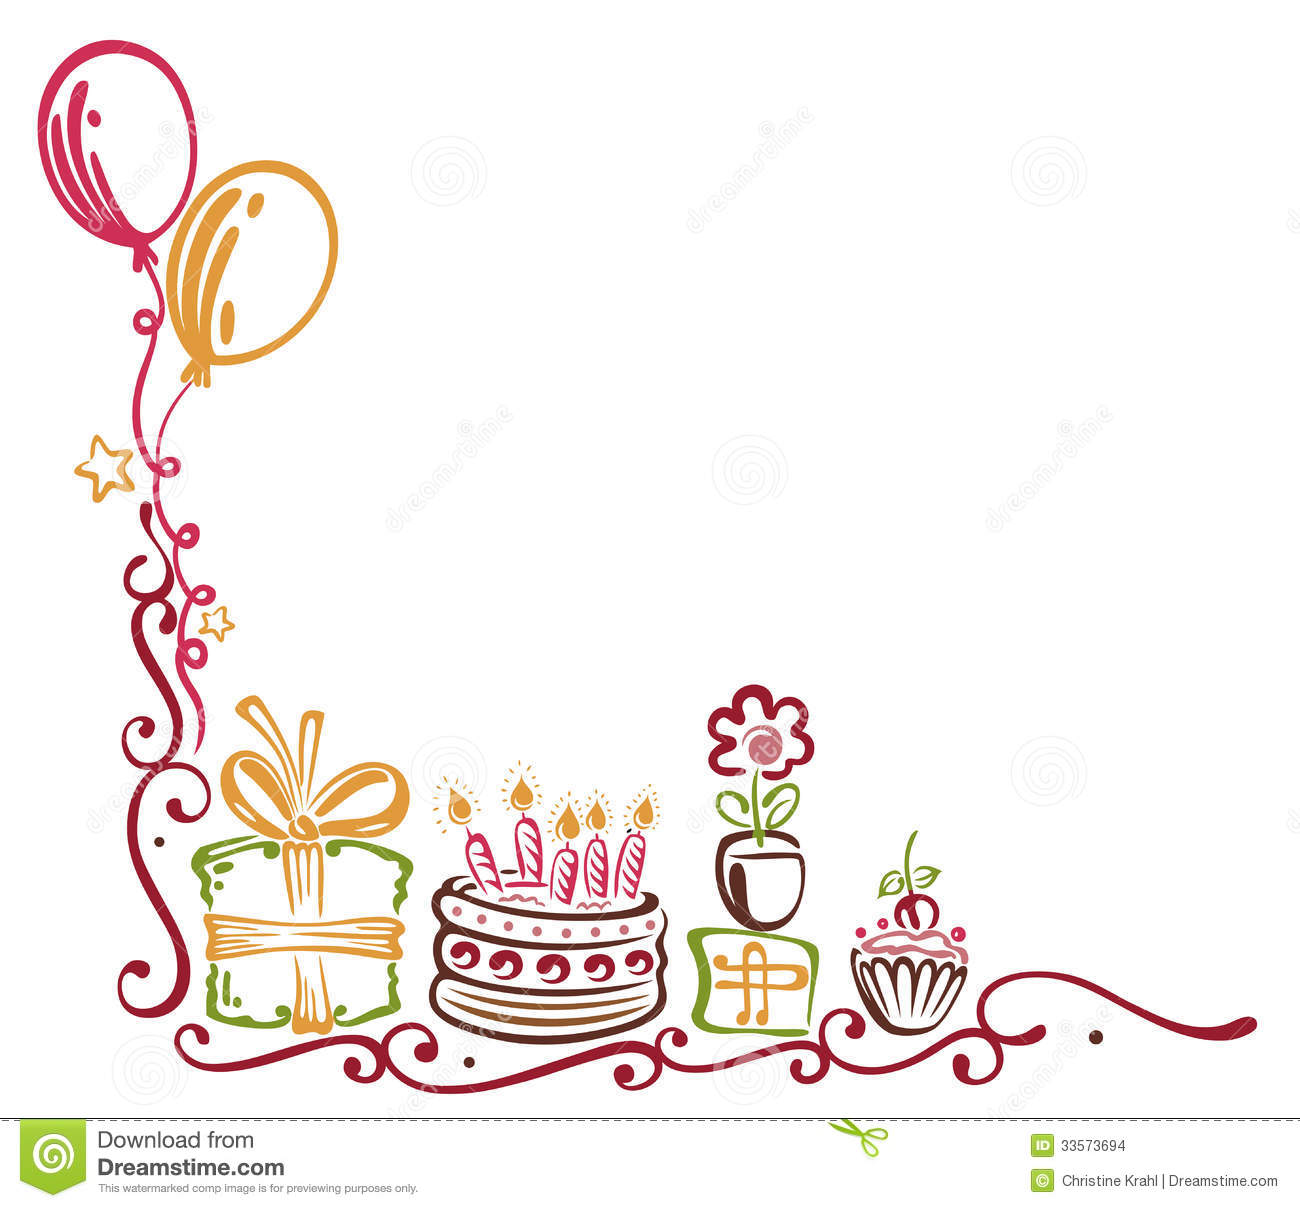 happy birthday borders for pictures ; birthday-border-colorful-tendril-balloons-33573694